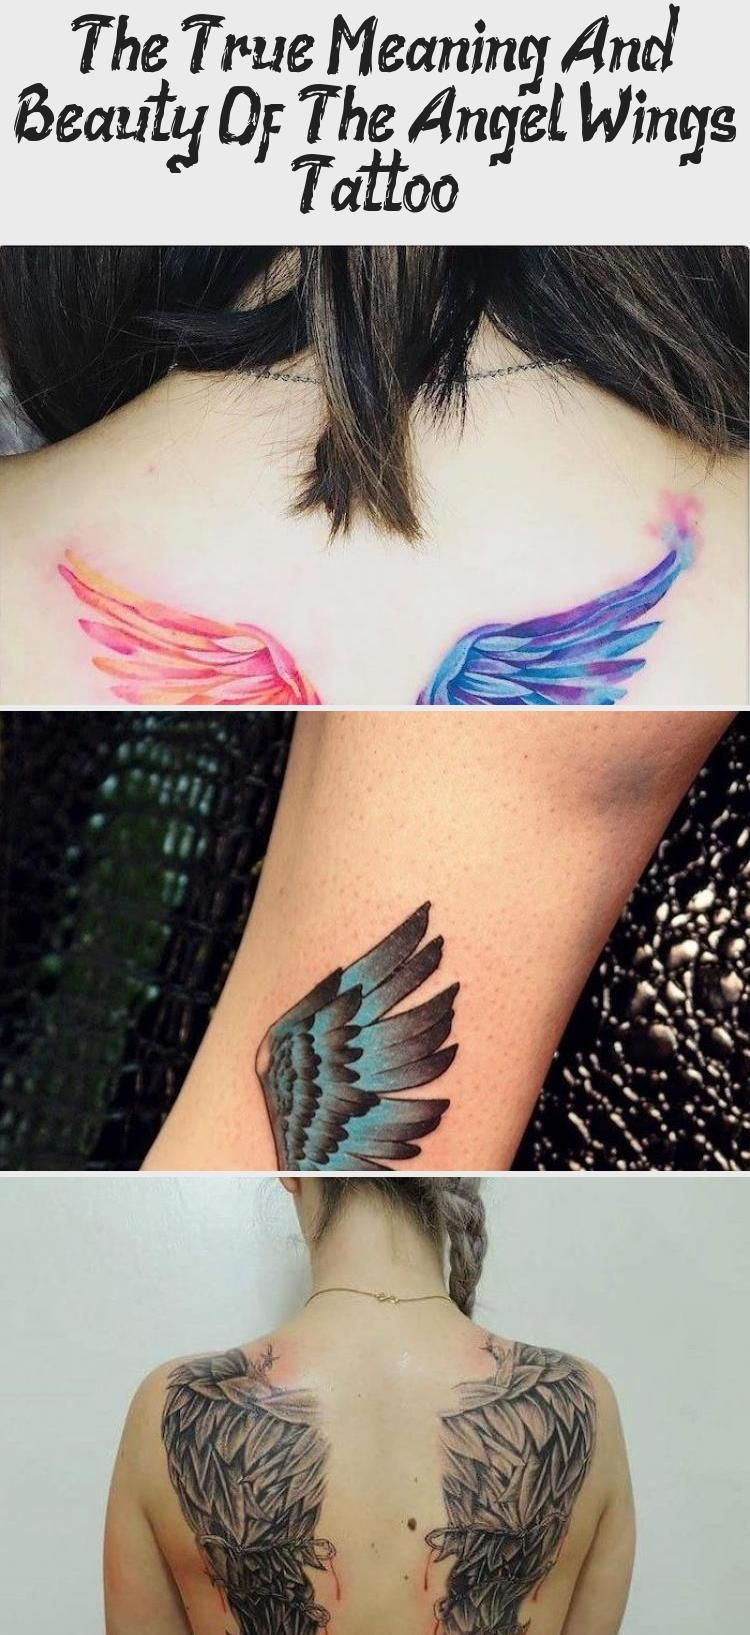 Angel Wings Tattoo Hand Tattoo Rose Woman With Grey Top Black Tights Wooden Floor Lavieenrosetattoo In 2020 Wings Tattoo Wings Tattoo Meaning Heart With Wings Tattoo